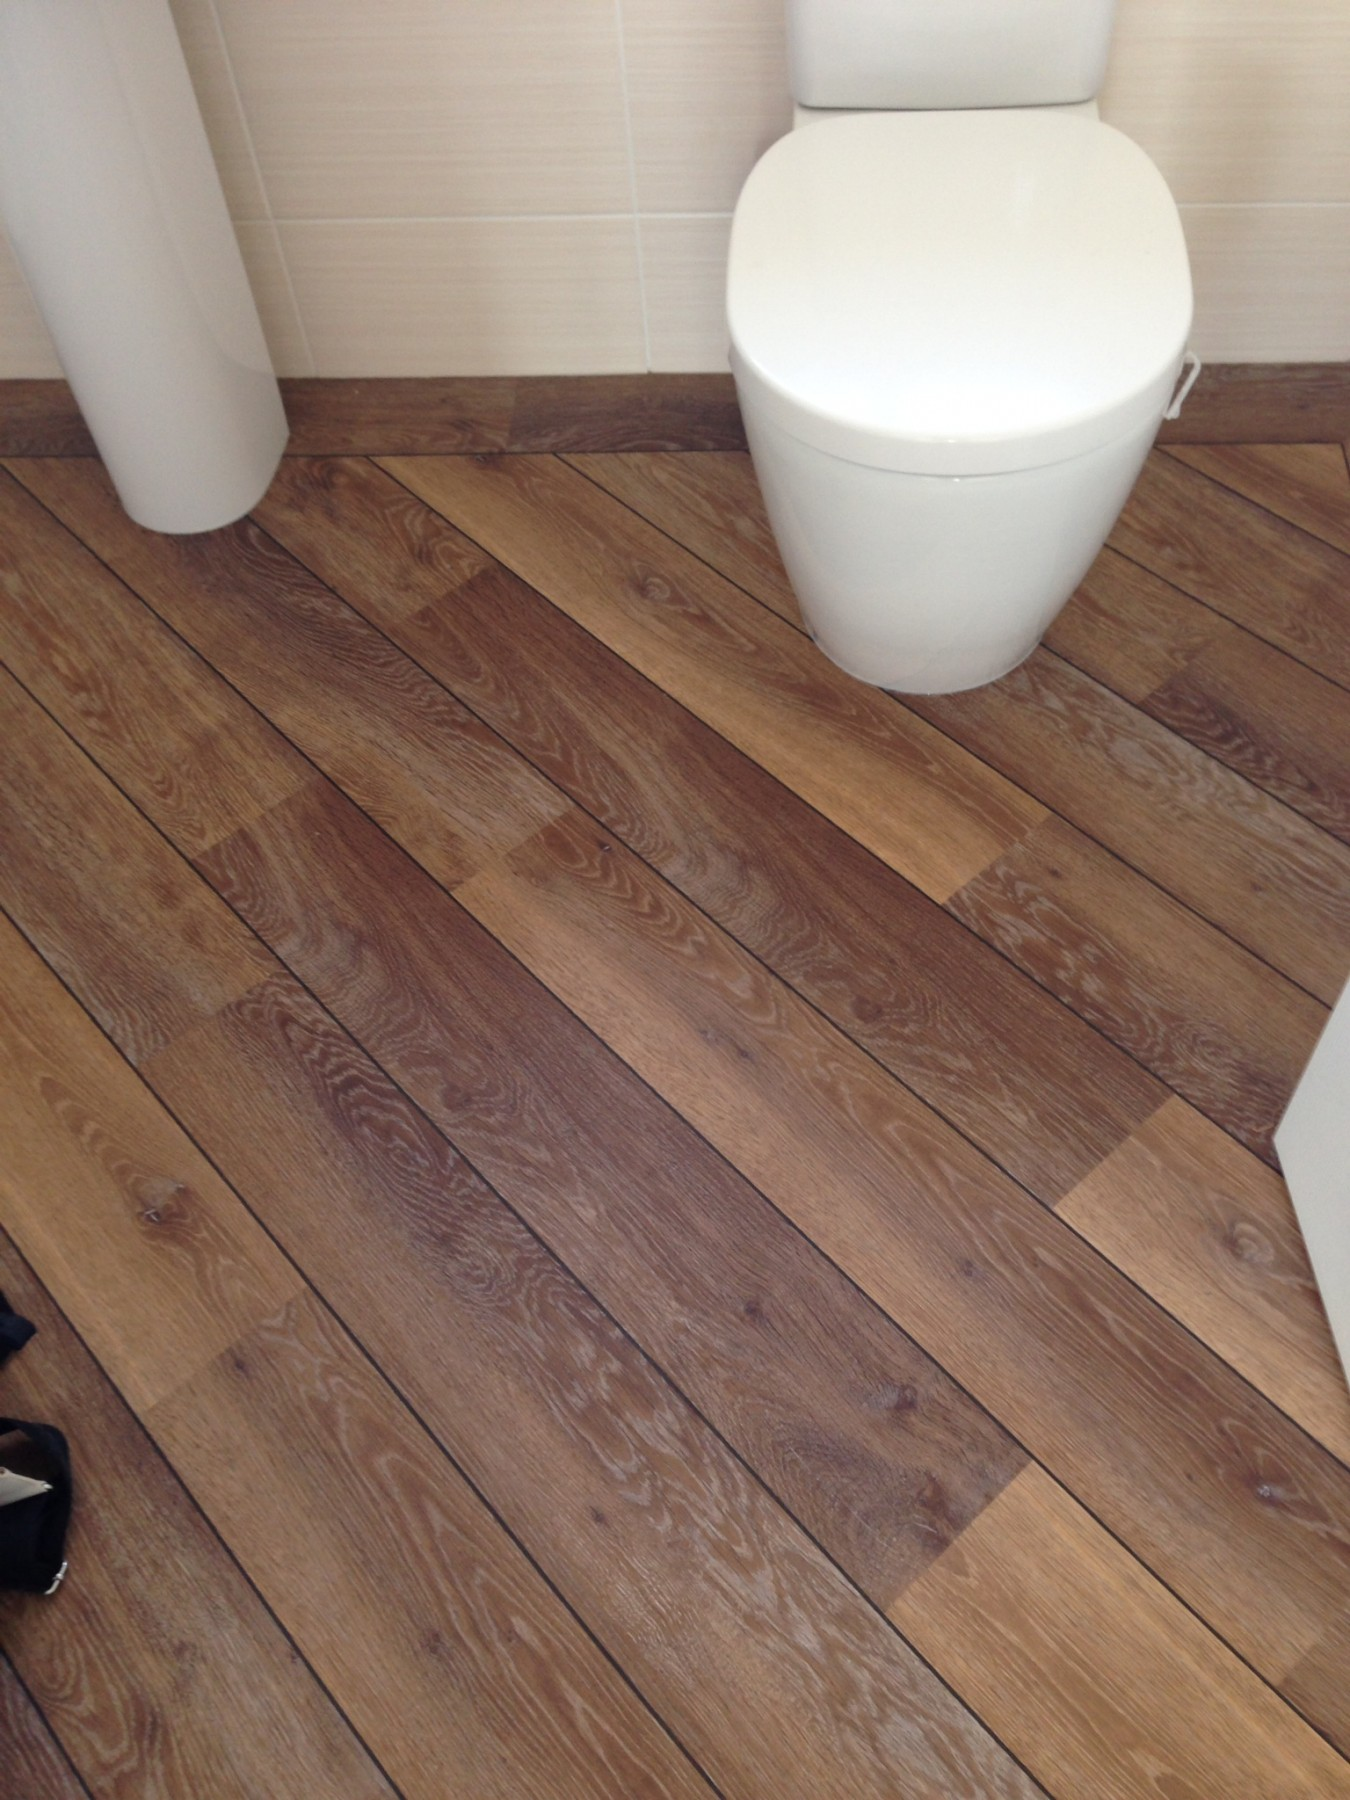 Cream tile room with a white toilet and dark wooden flooring